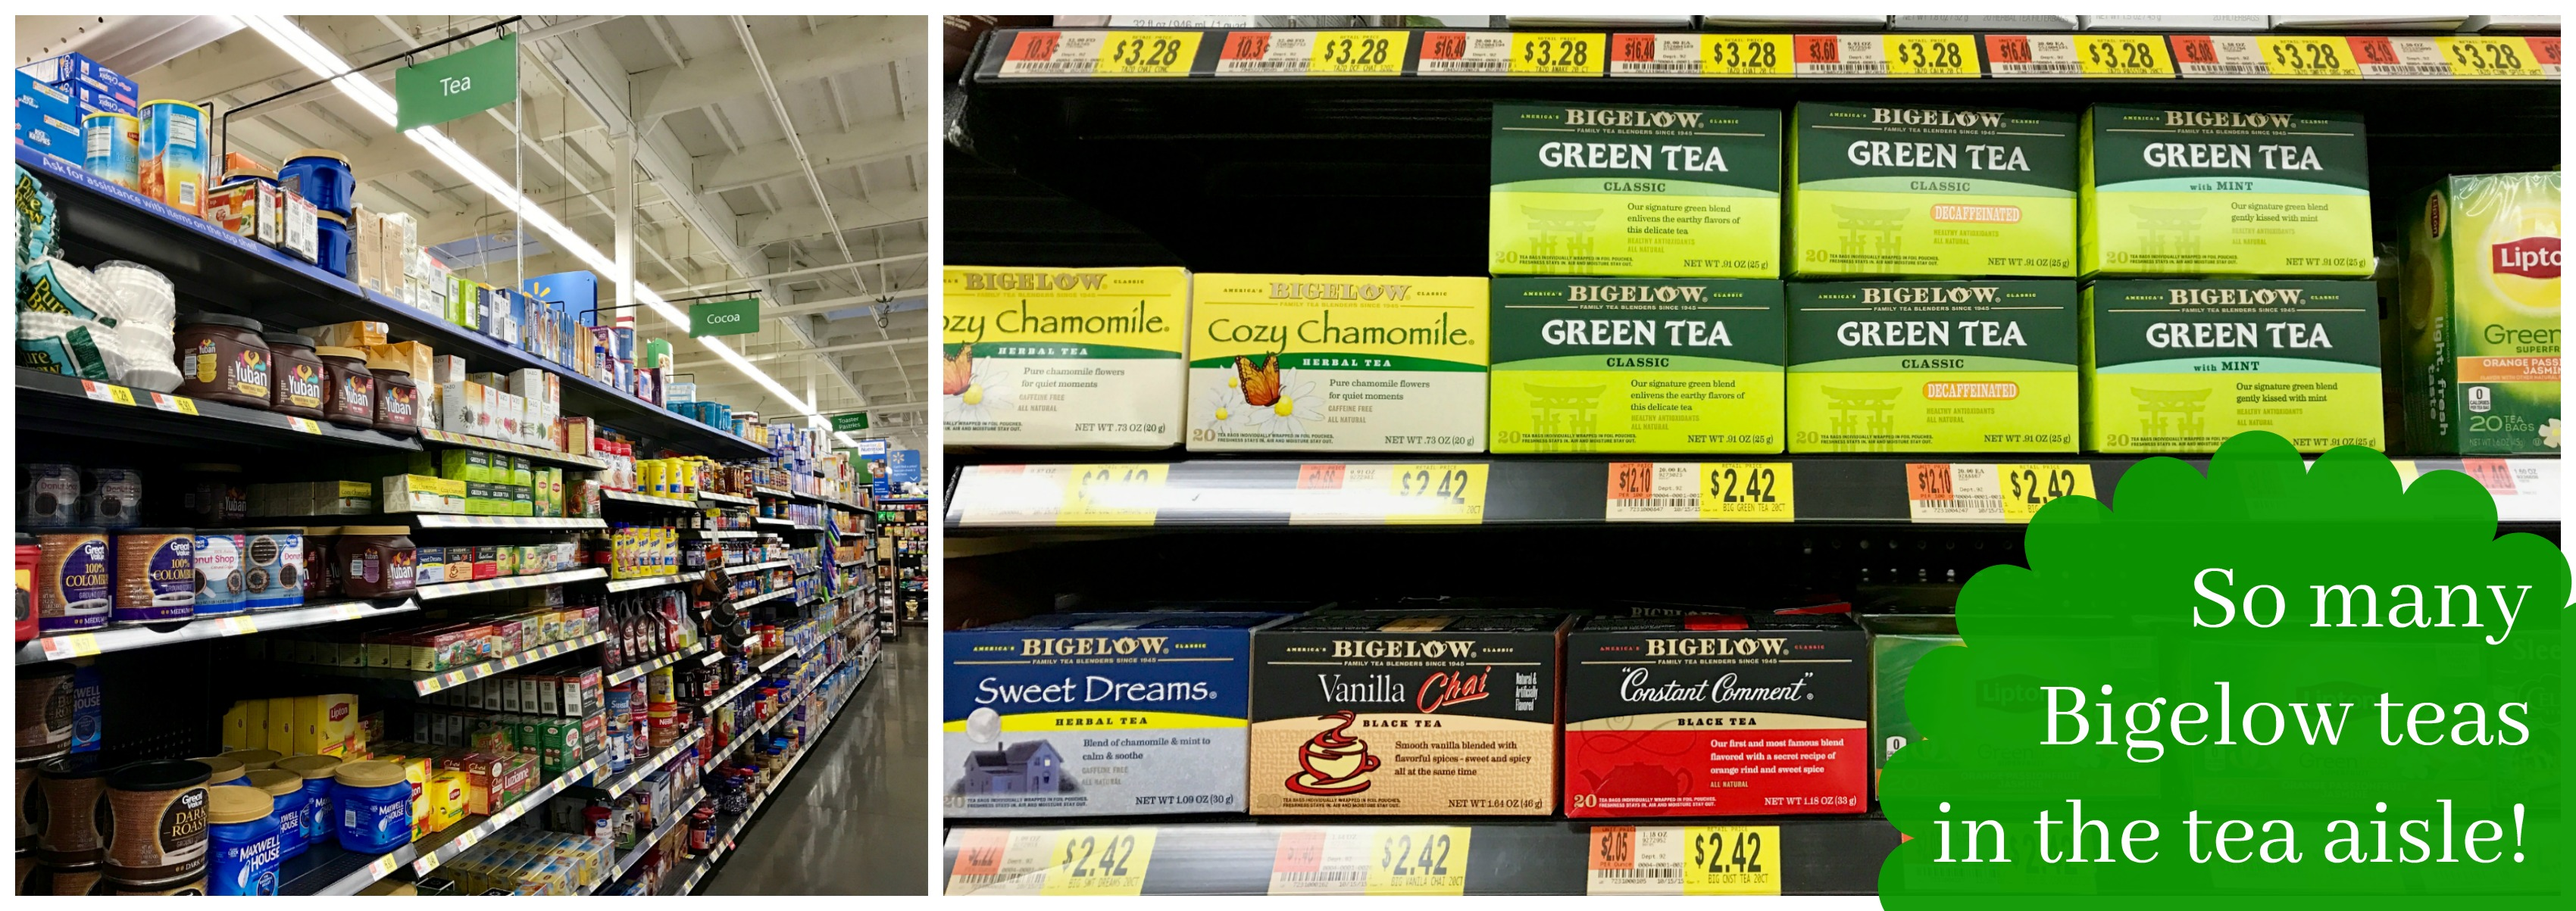 So many Bigelow teas in the tea aisle!